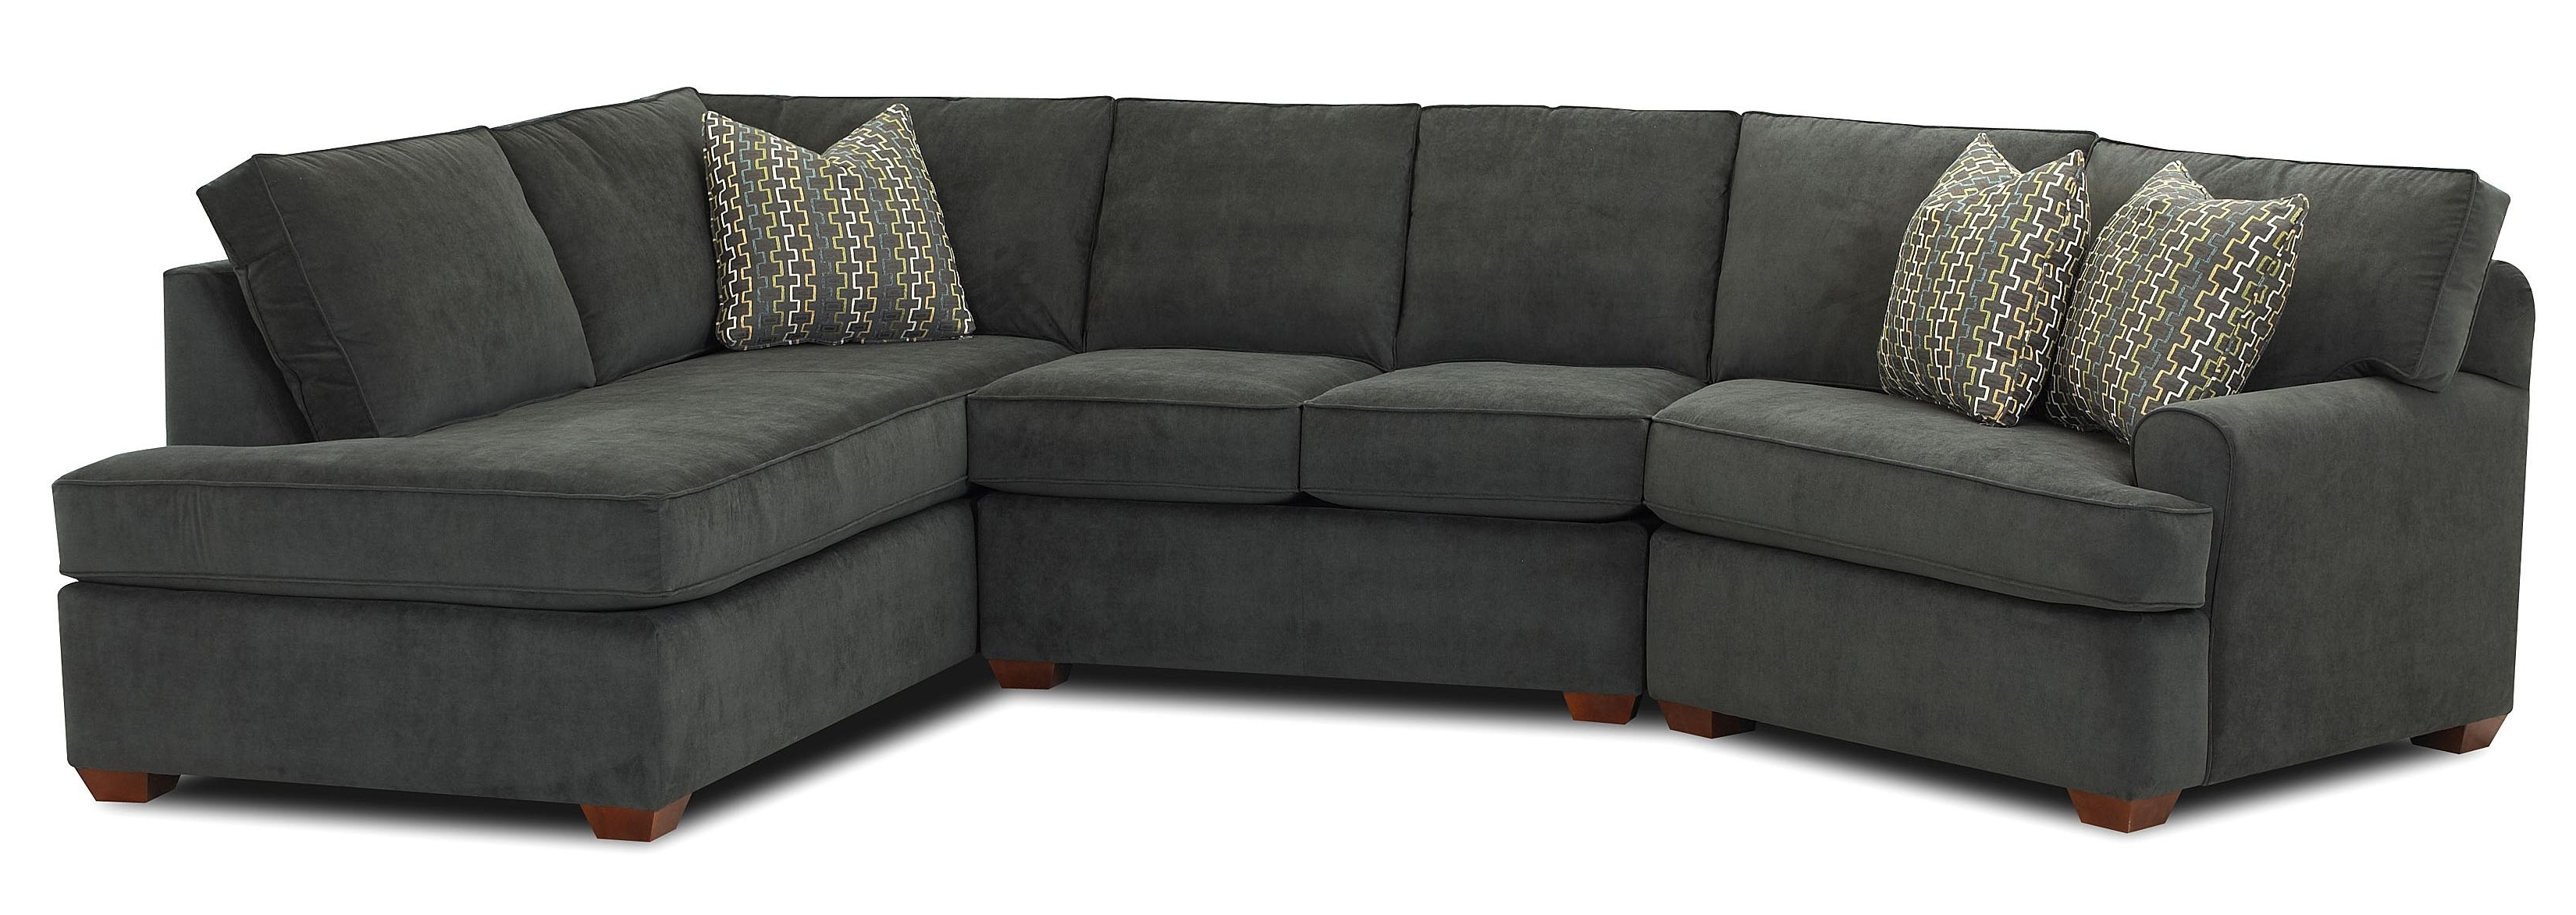 Long Sectional Sofas With Chaise Throughout Well Known Klaussner Hybrid Sectional Sofa With Right Facing Sofa Chaise (View 15 of 20)